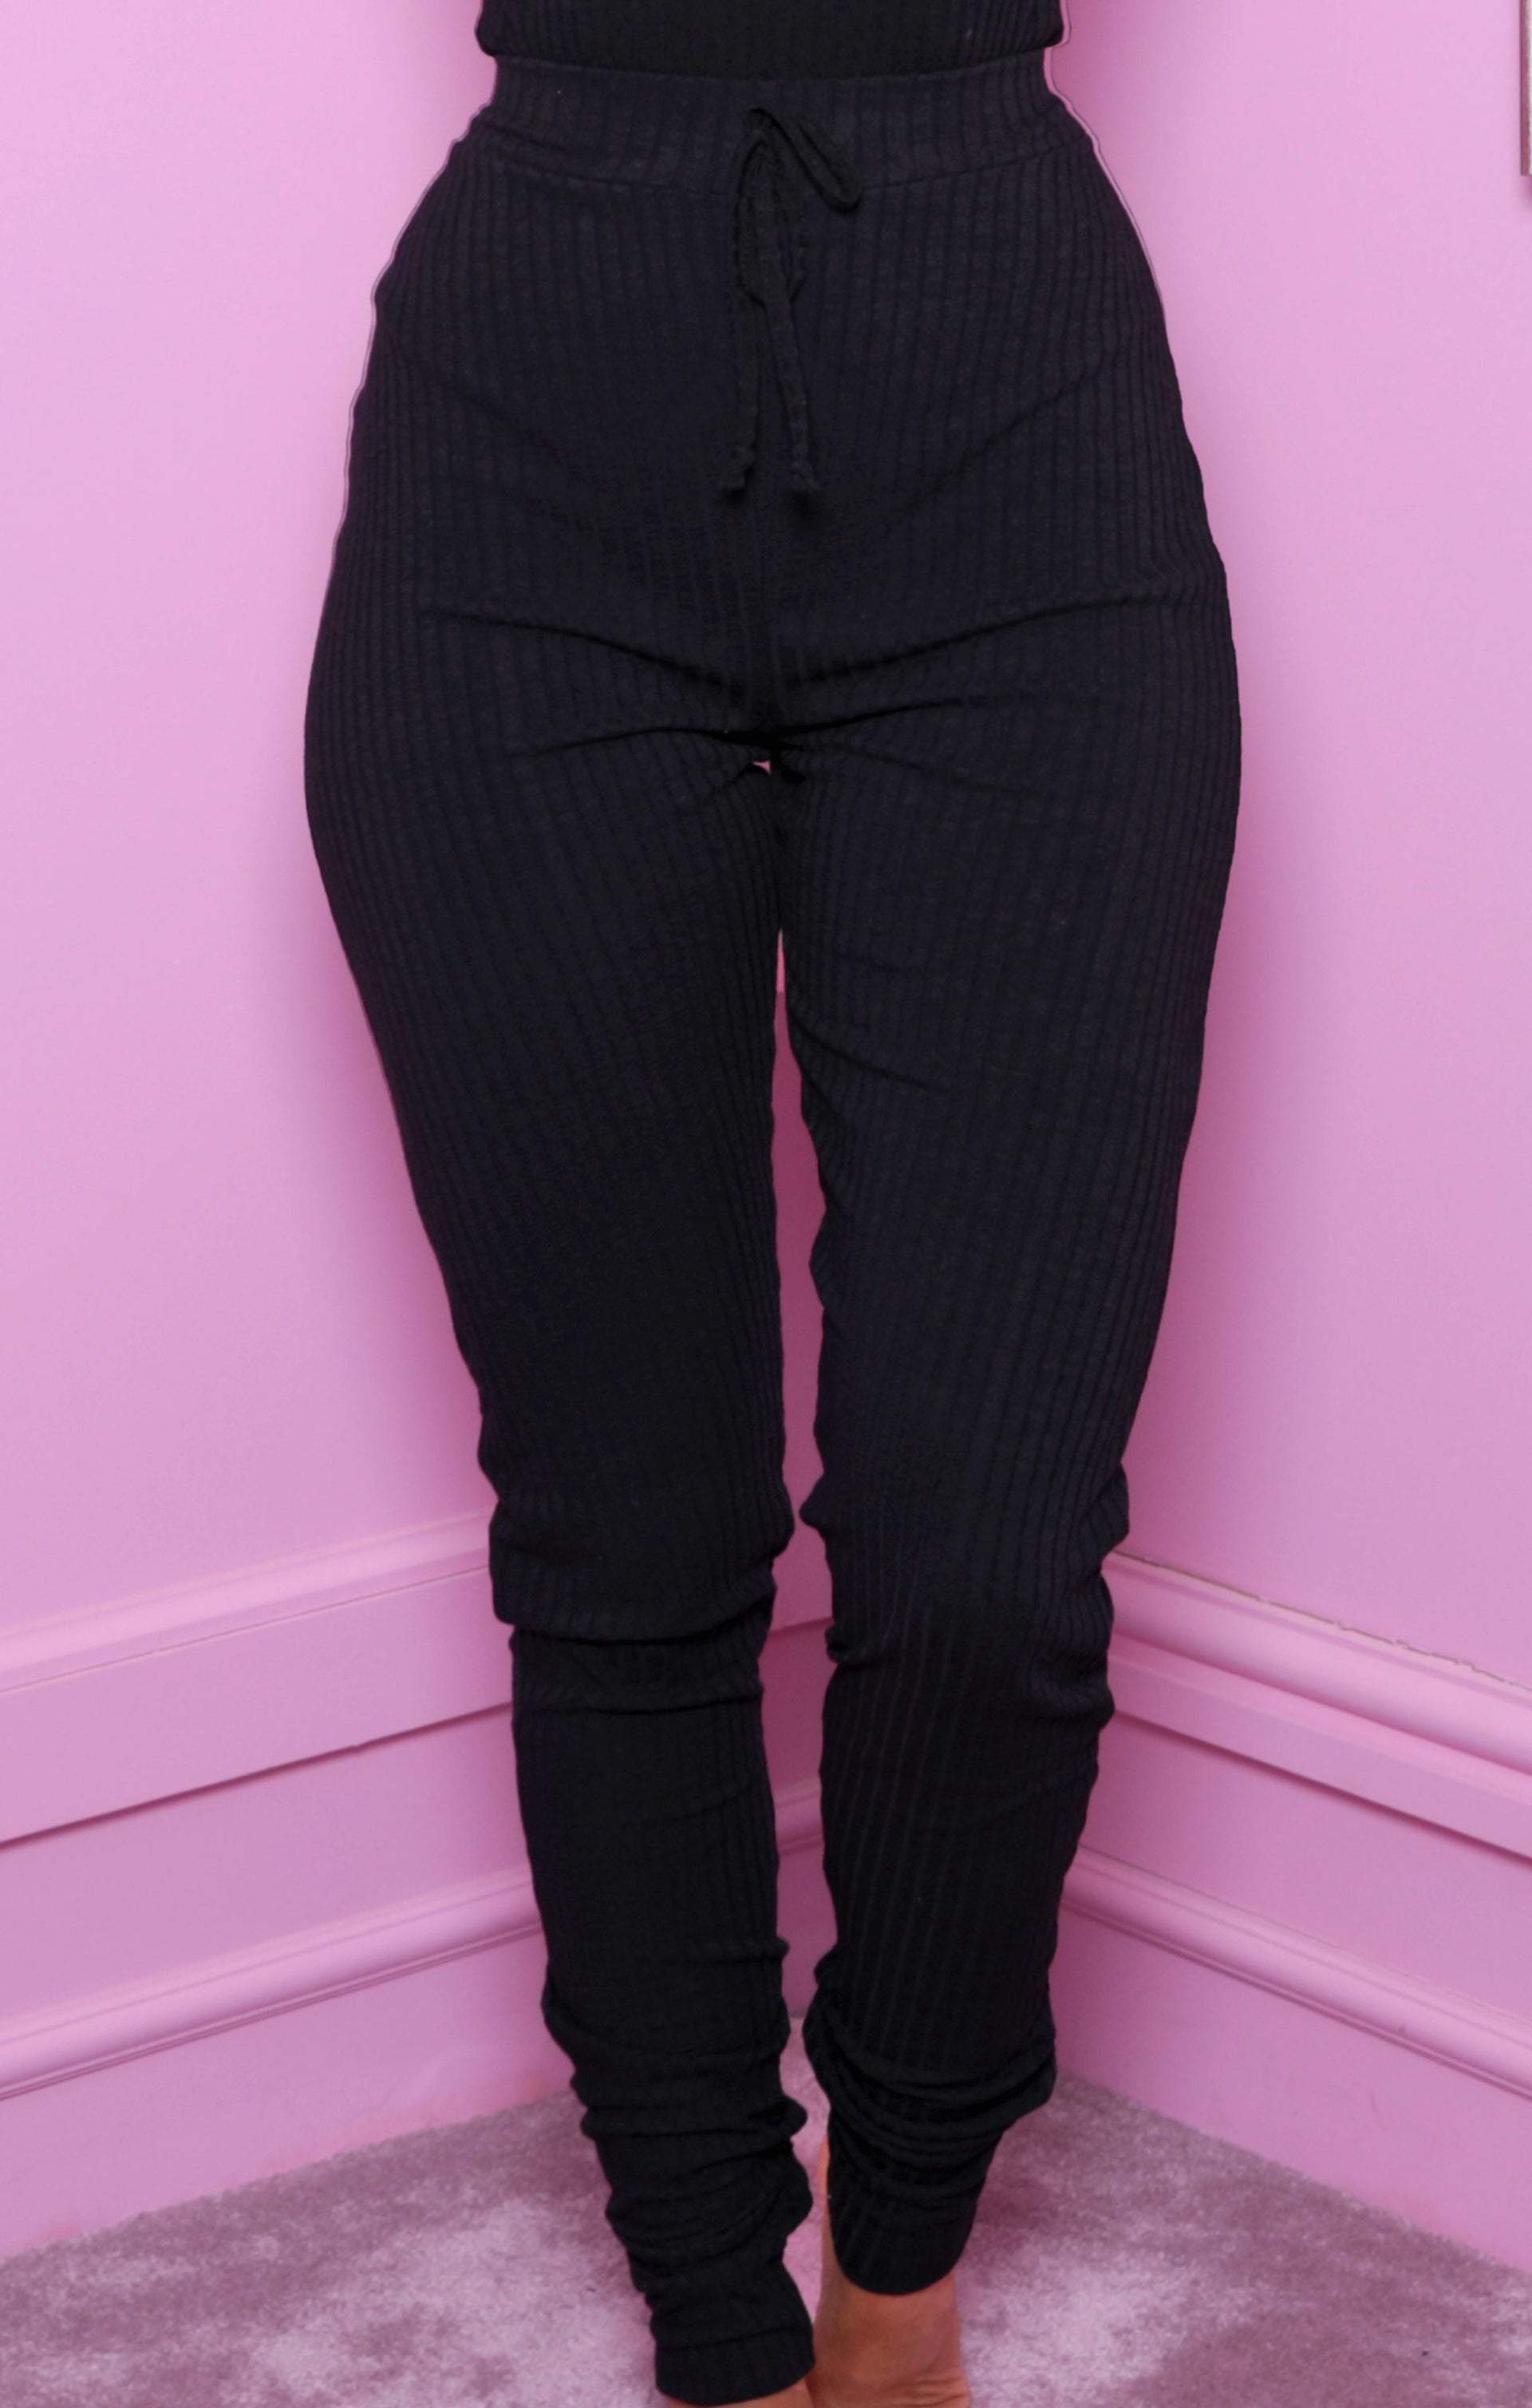 Black Ribbed Cuffed High Waisted Leggings - Kenzie